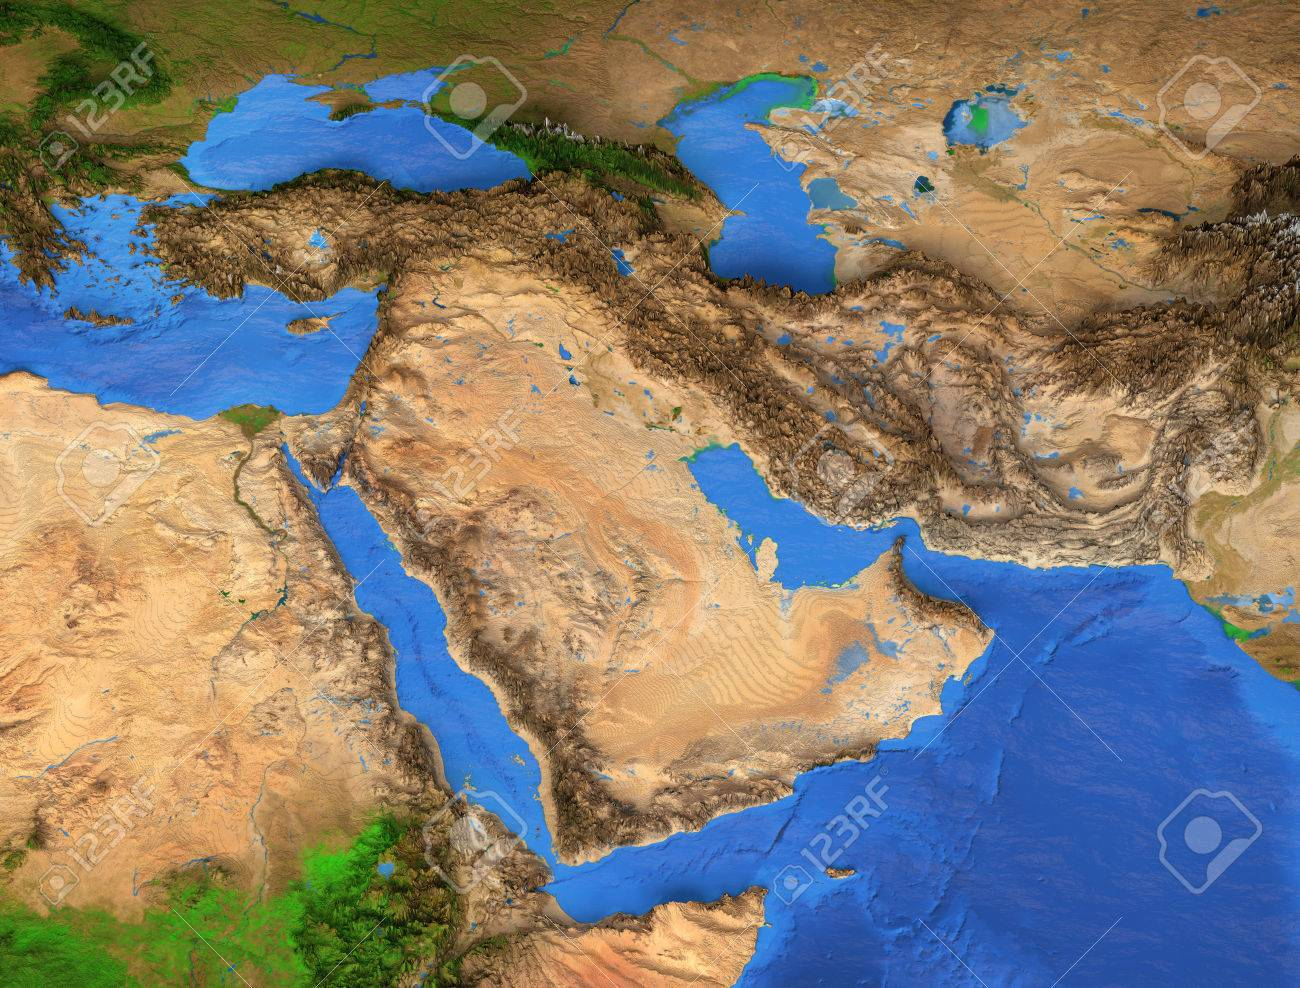 Middle East Map   Gulf Region. Detailed Satellite View Of The